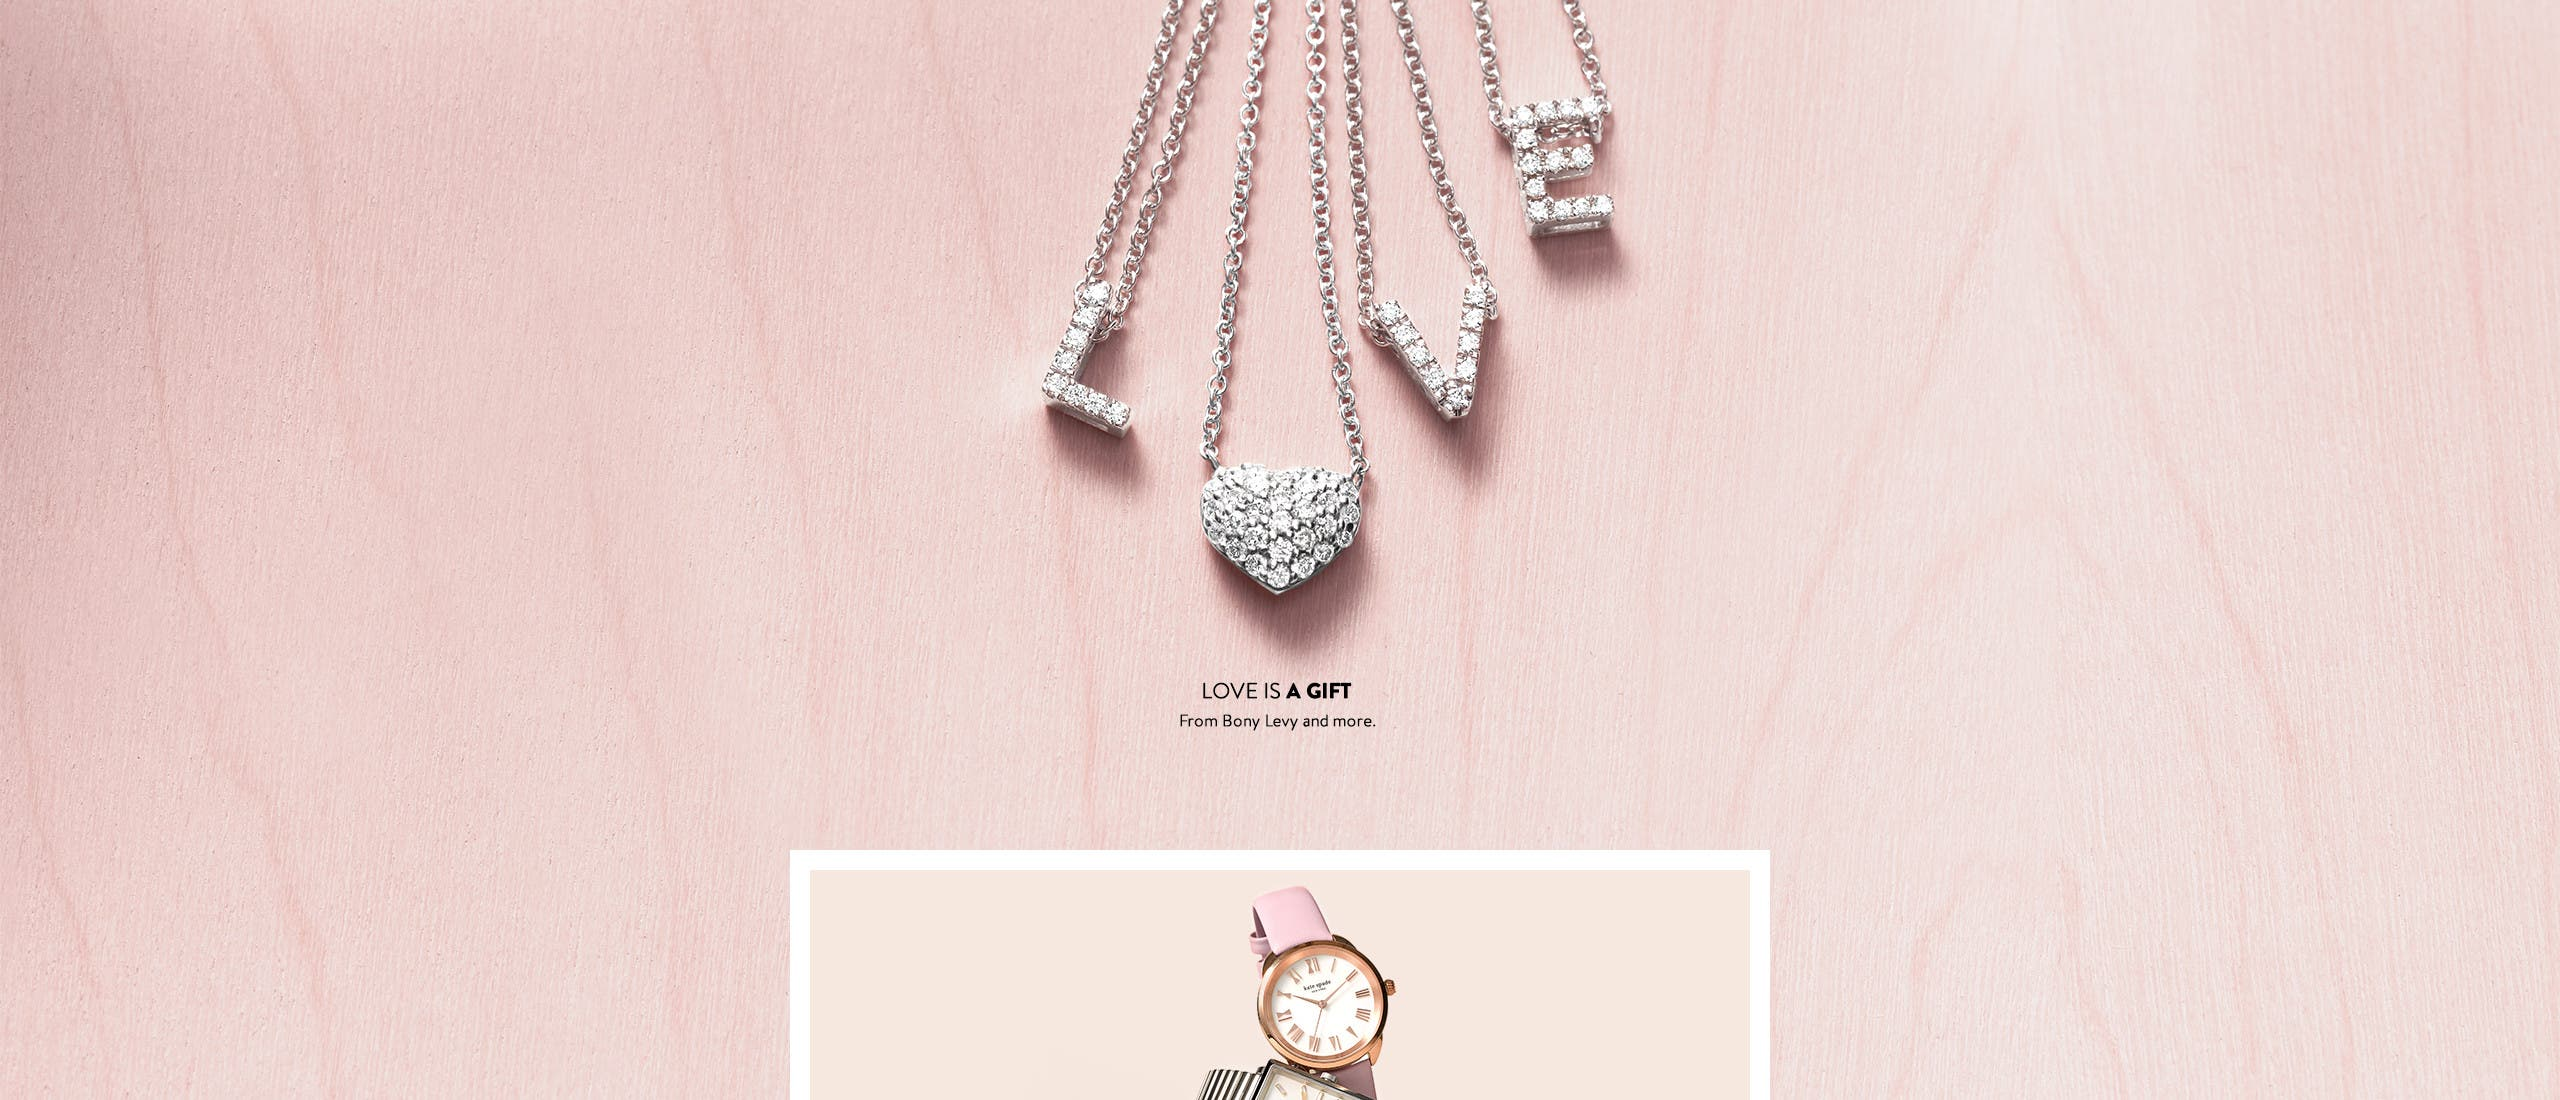 Love is a gift: Valentine's Day jewelry gifts for women.